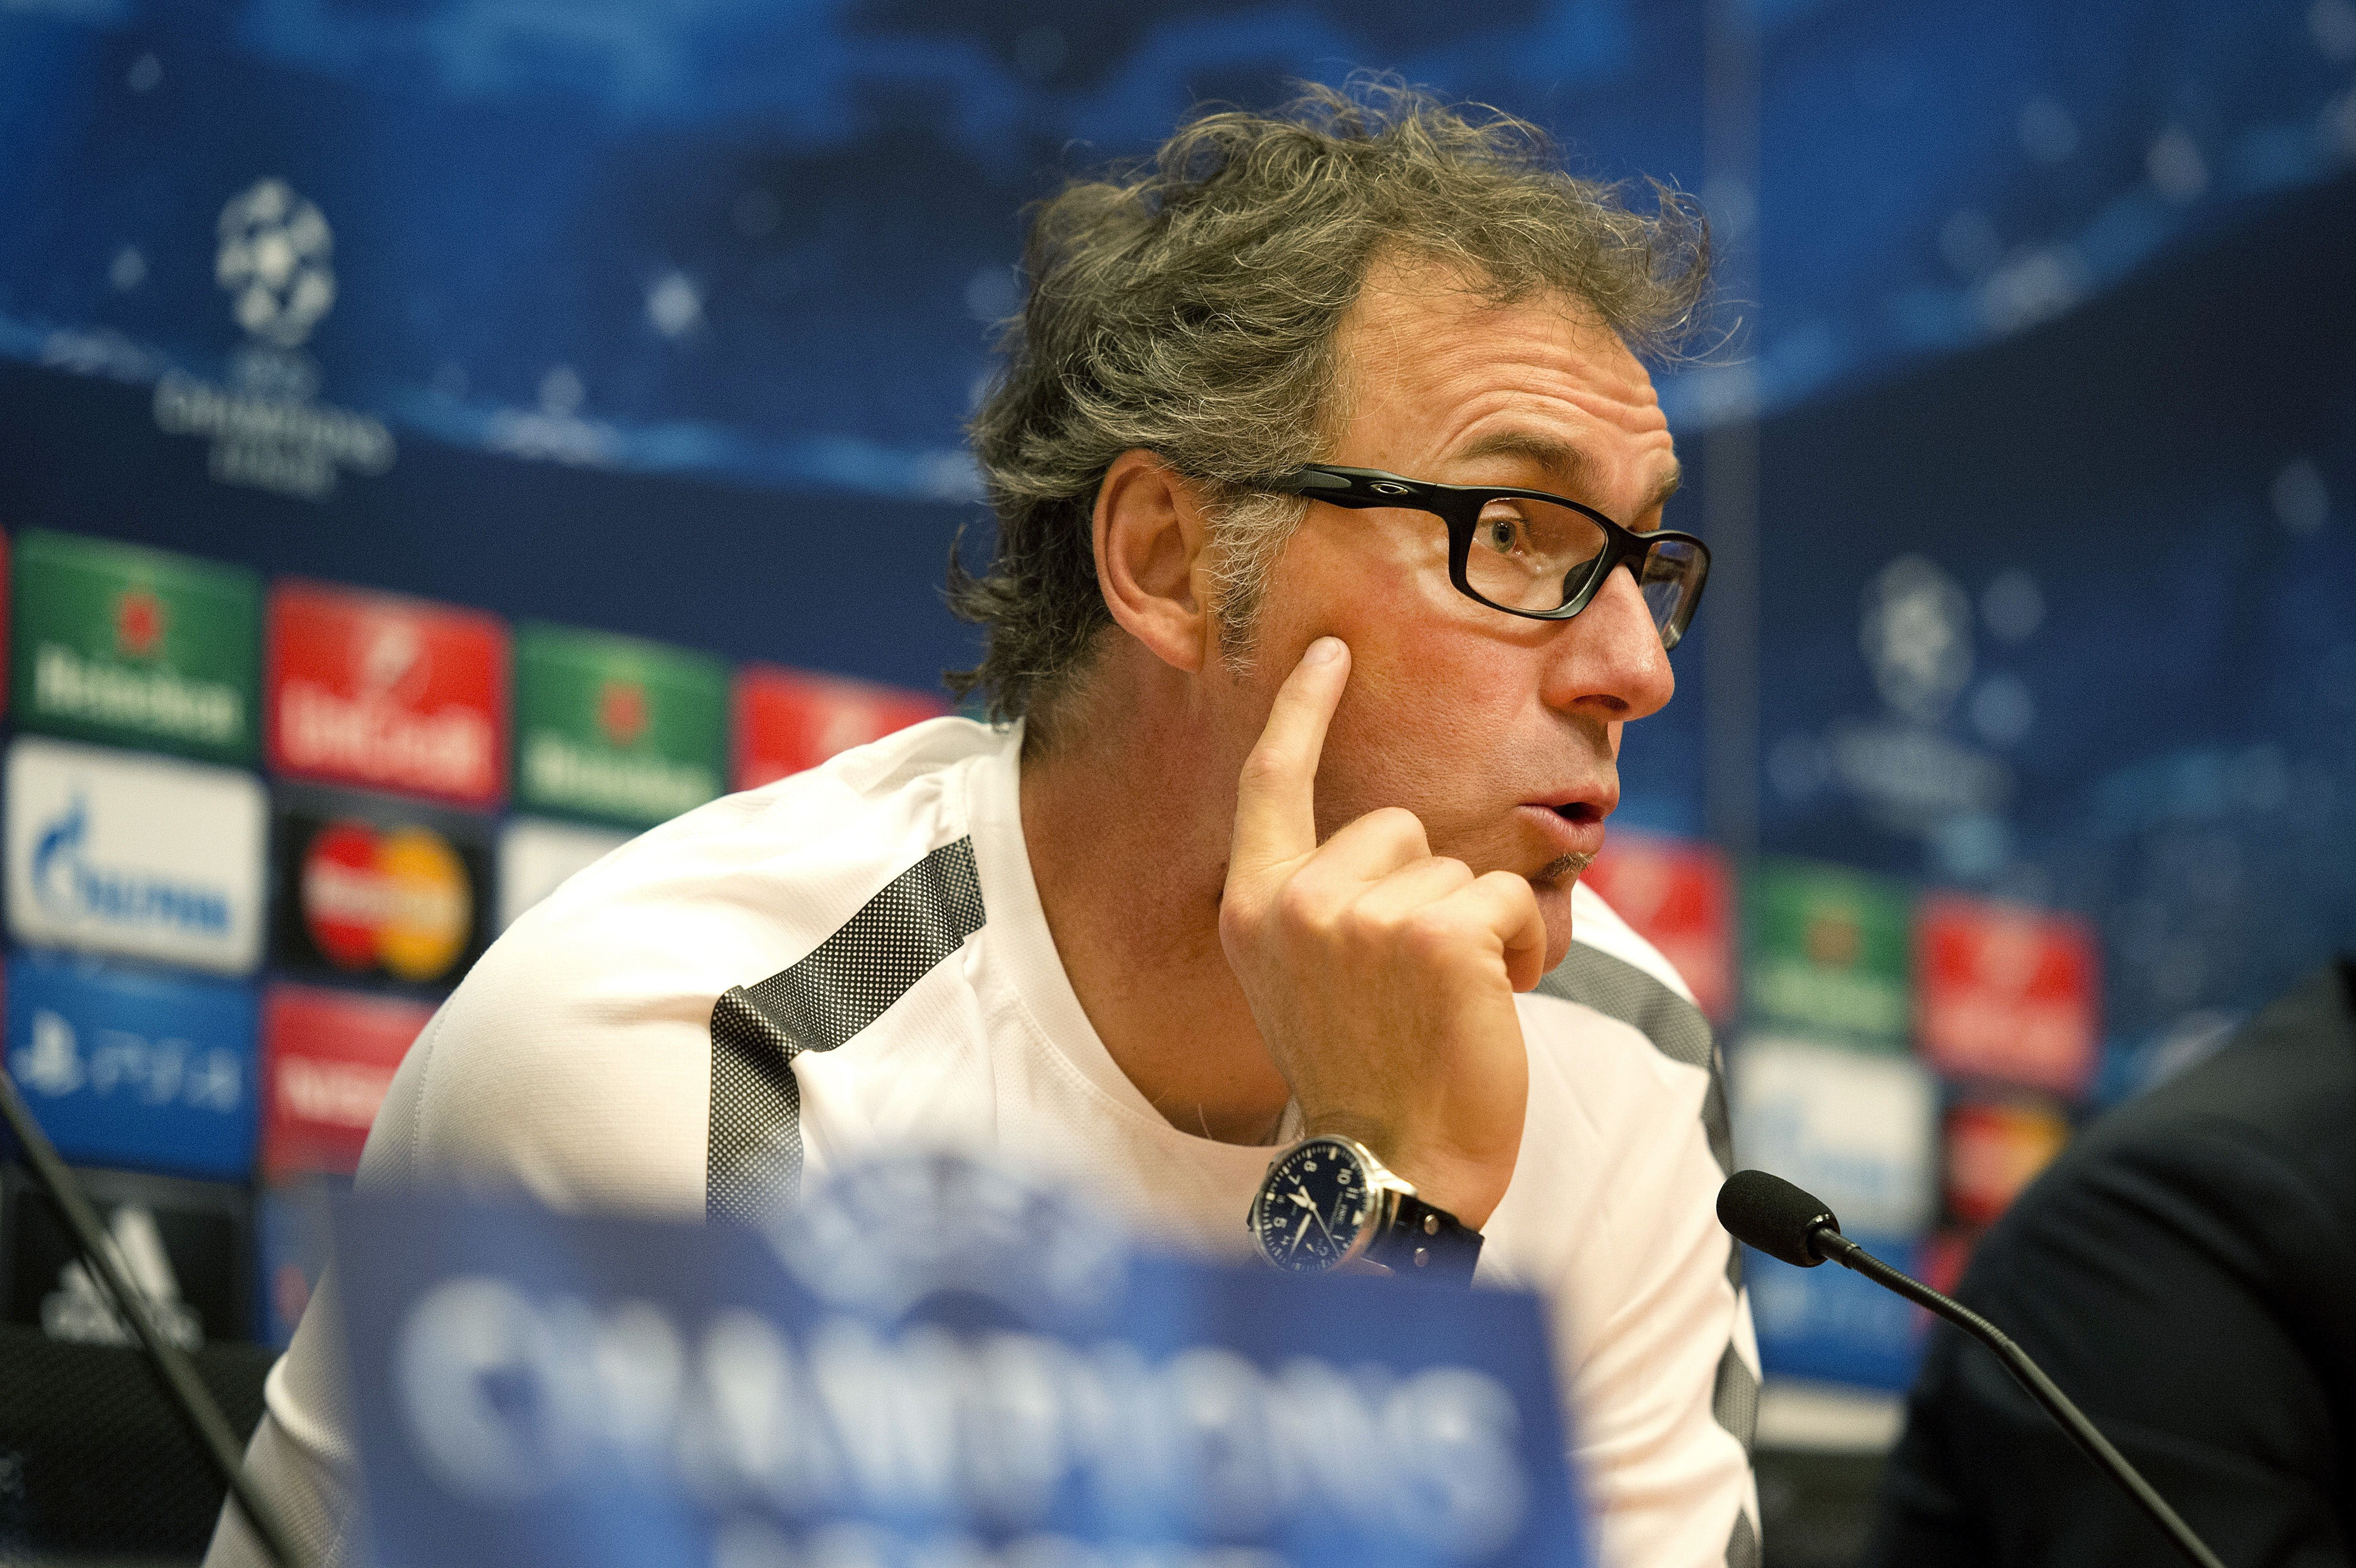 PSG coach Laurent Blanc speaks during a press conference before his team's first UEFA Champions League group match against Ajax.